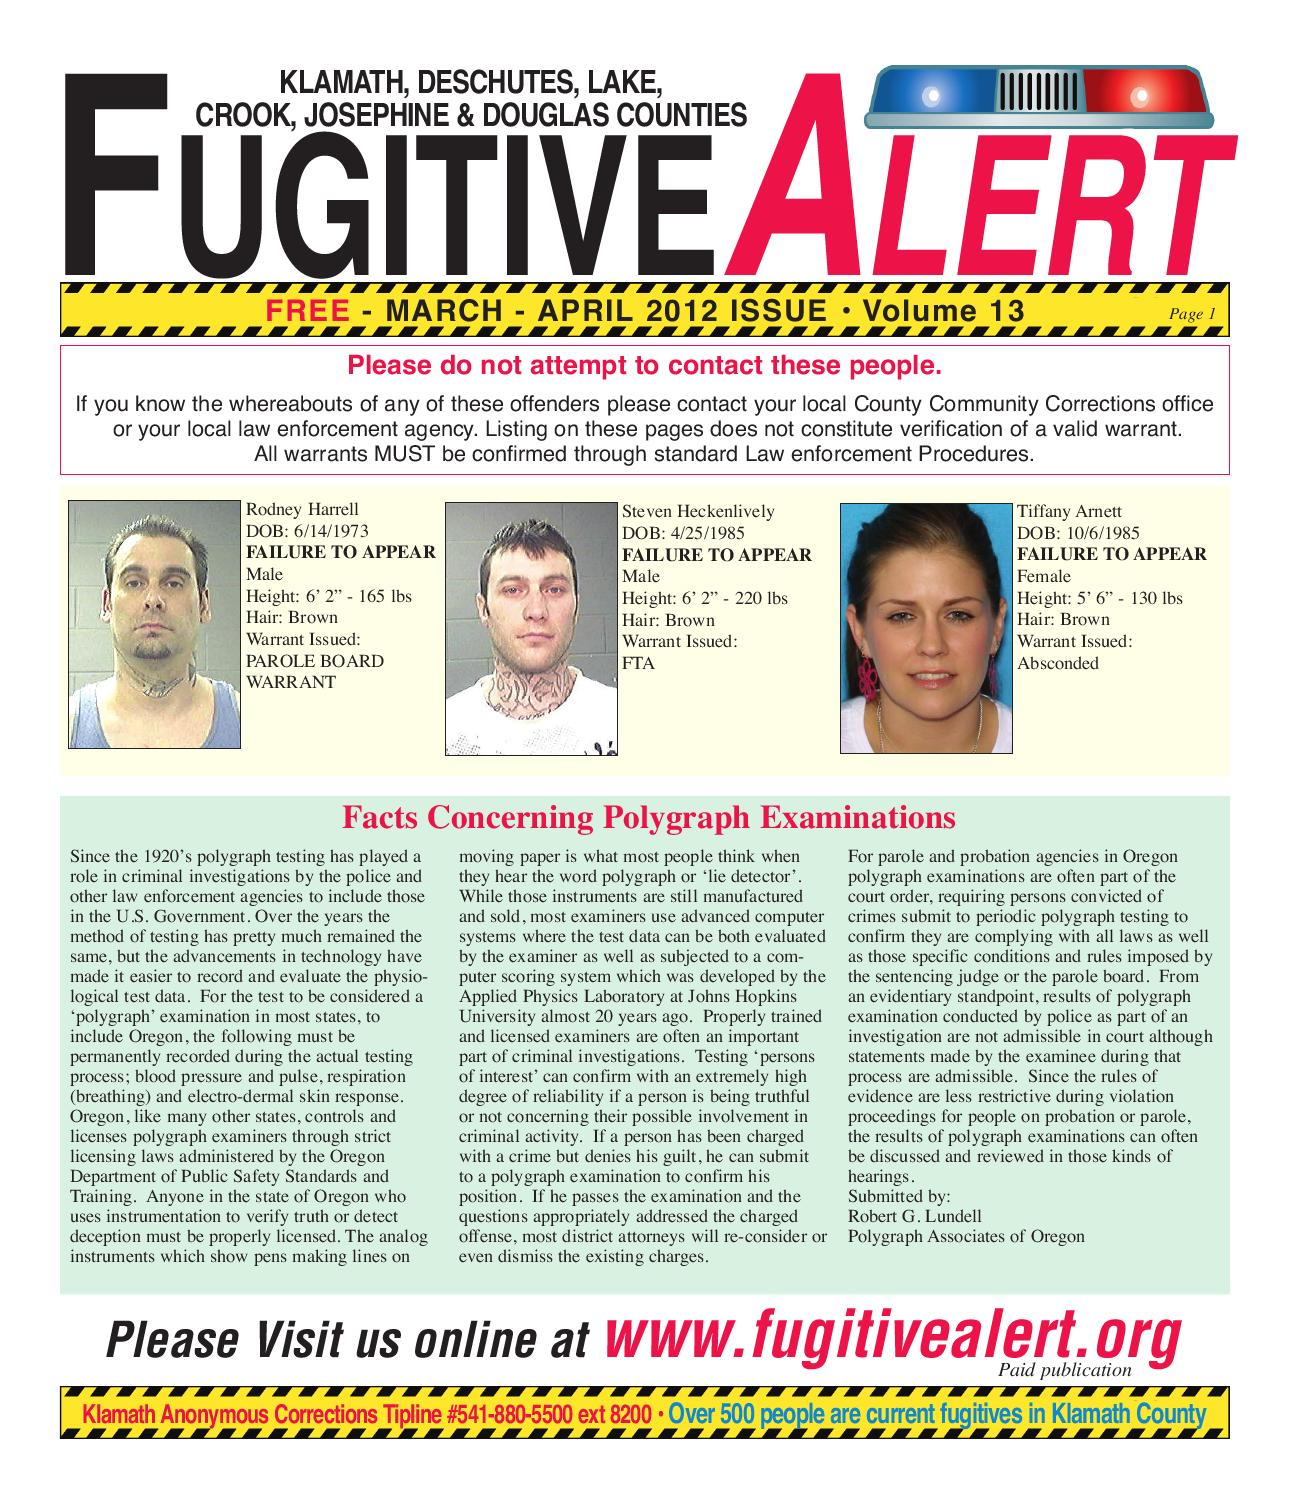 Fugitive Alert March/April 2012 by Herald and News - issuu